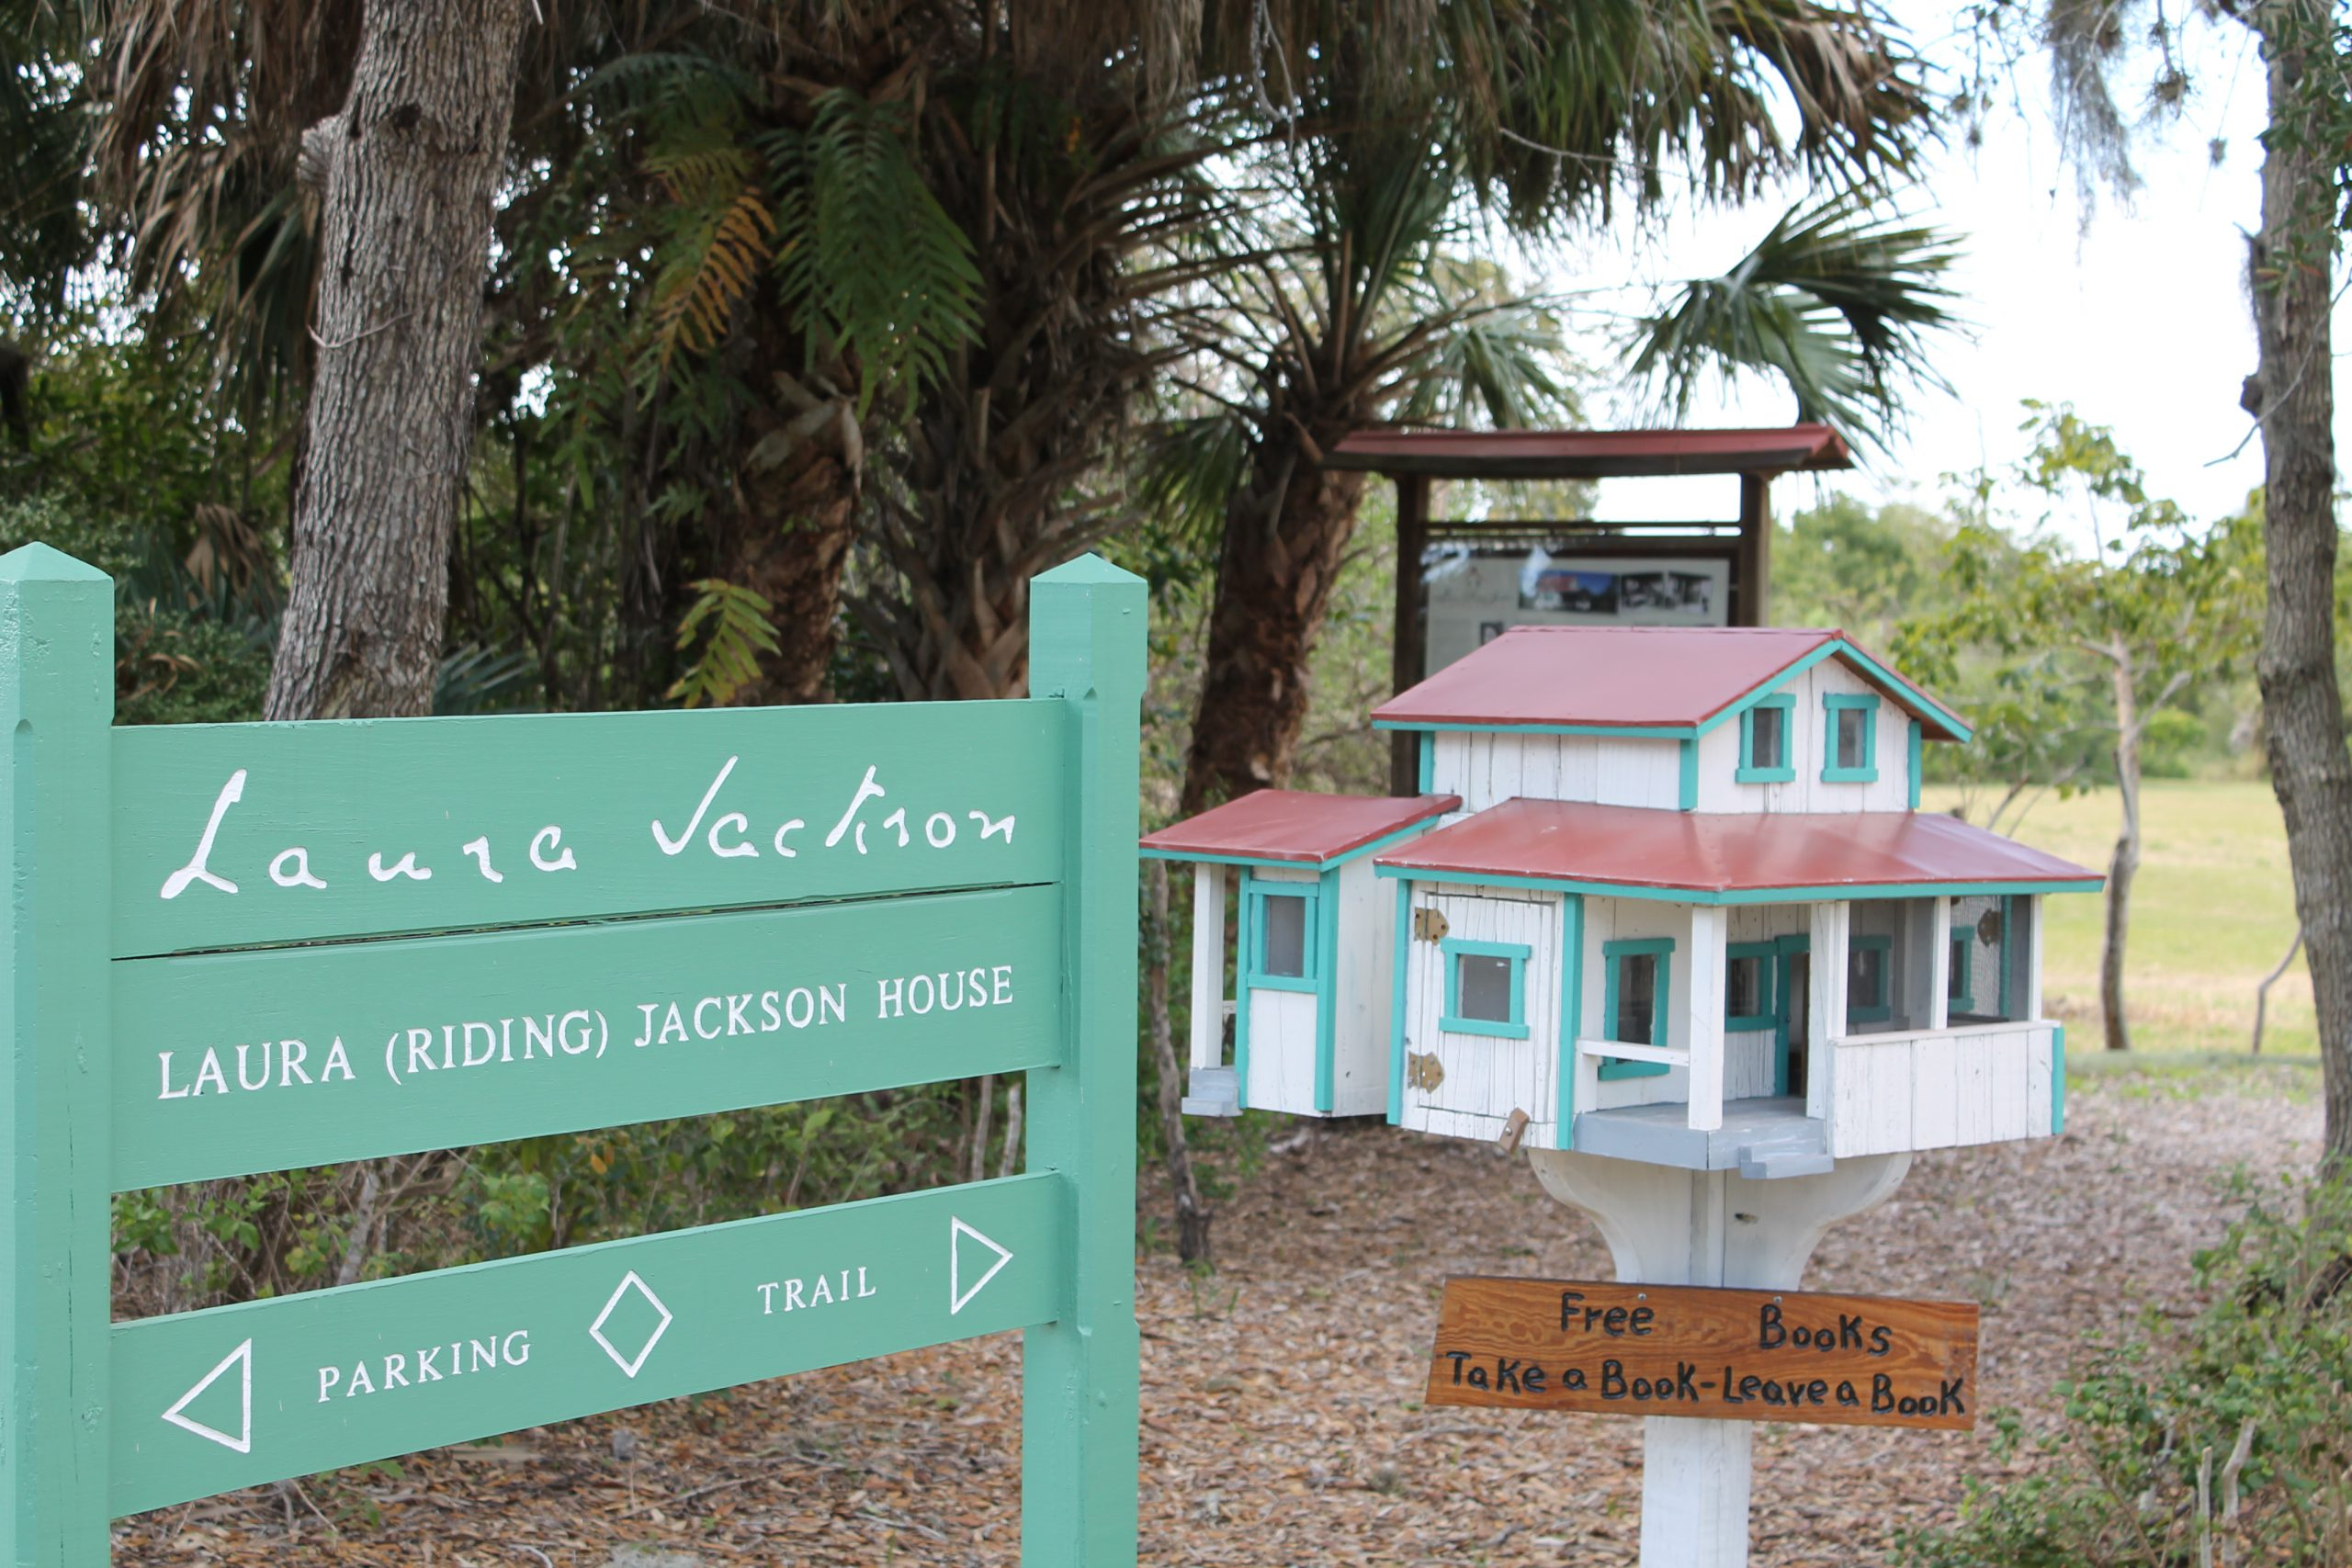 Laura (Riding) Jackson small wooden house and teal sign